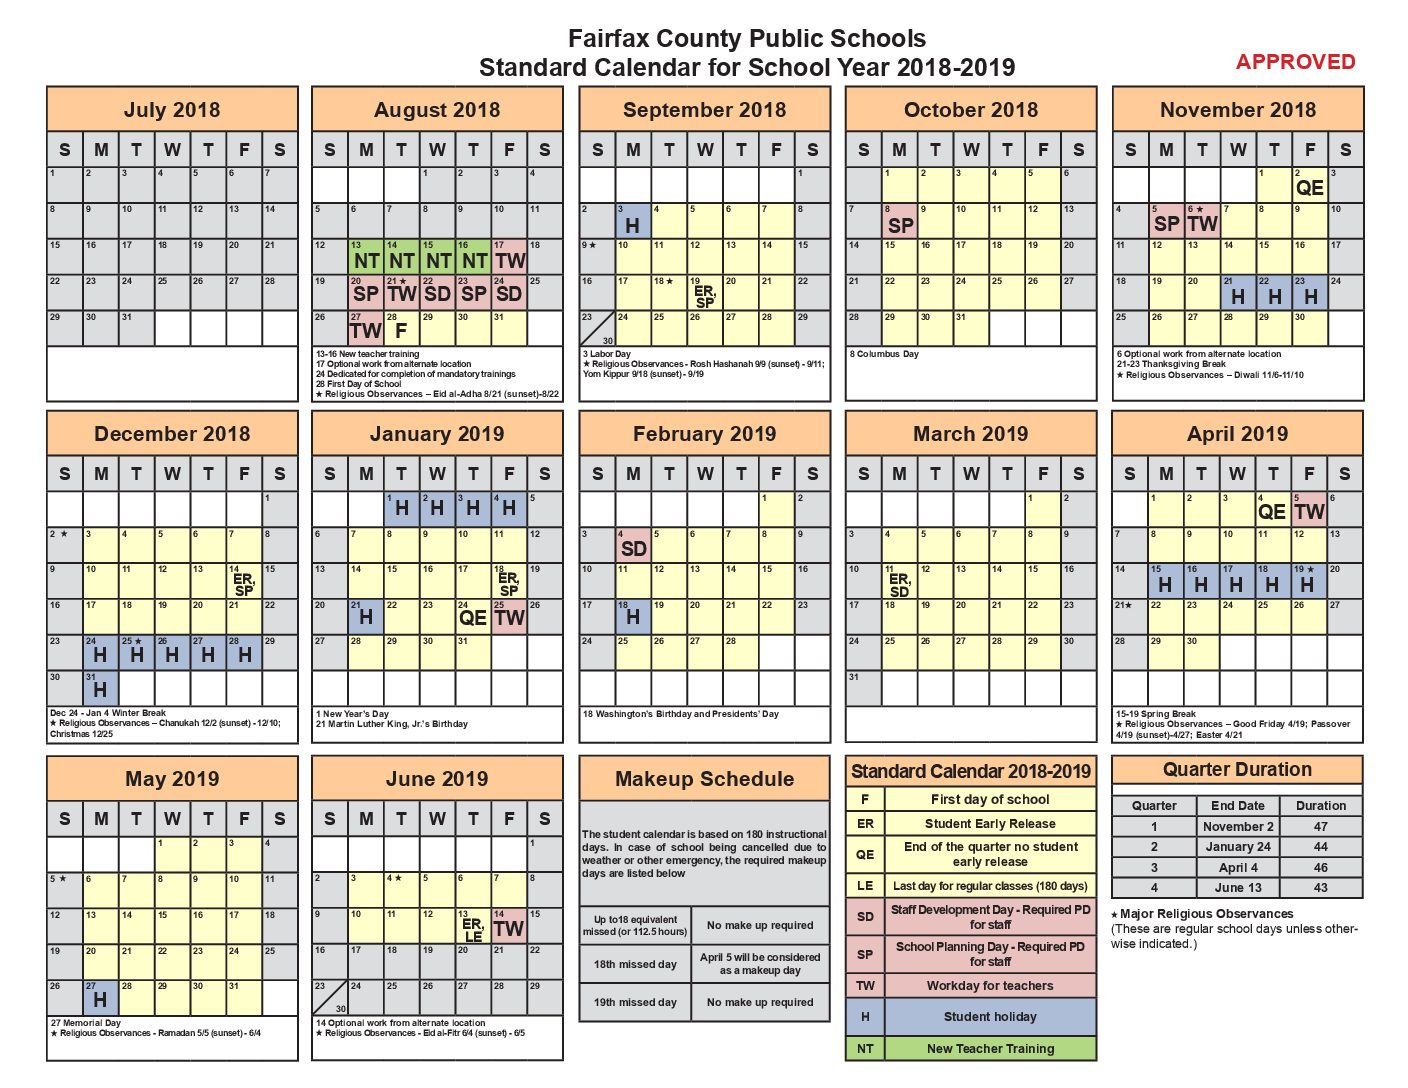 FCPS calendar leaves much to be desired